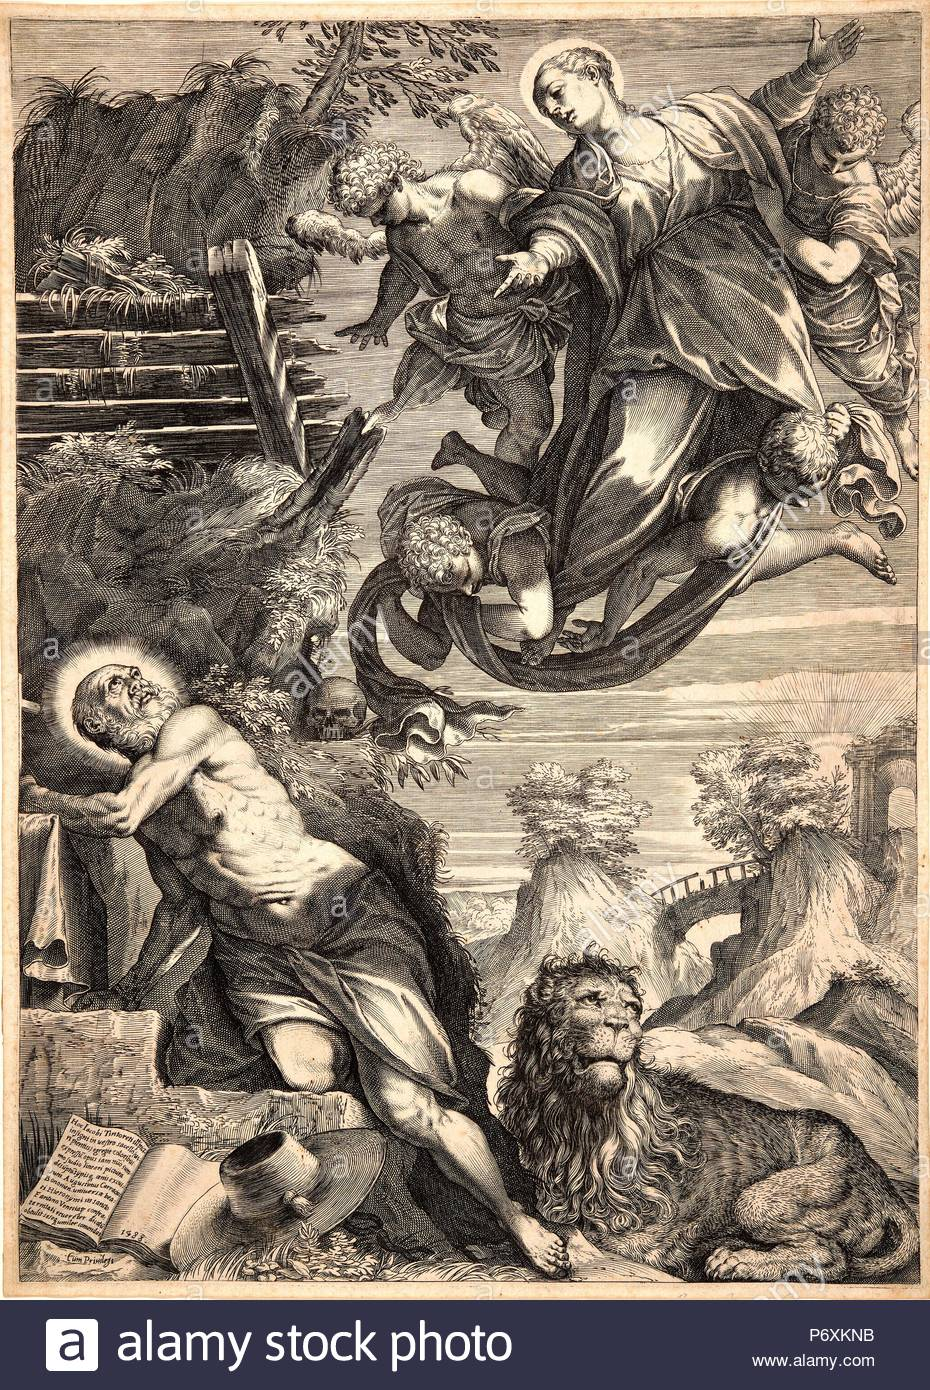 Agostino Carracci (Italian, 1557-1602) after Jacopo Tintoretto (Italian  (Venetian), 1519-1594). The Madonna Appearing to St. Jerome, 1588.  Engraving.